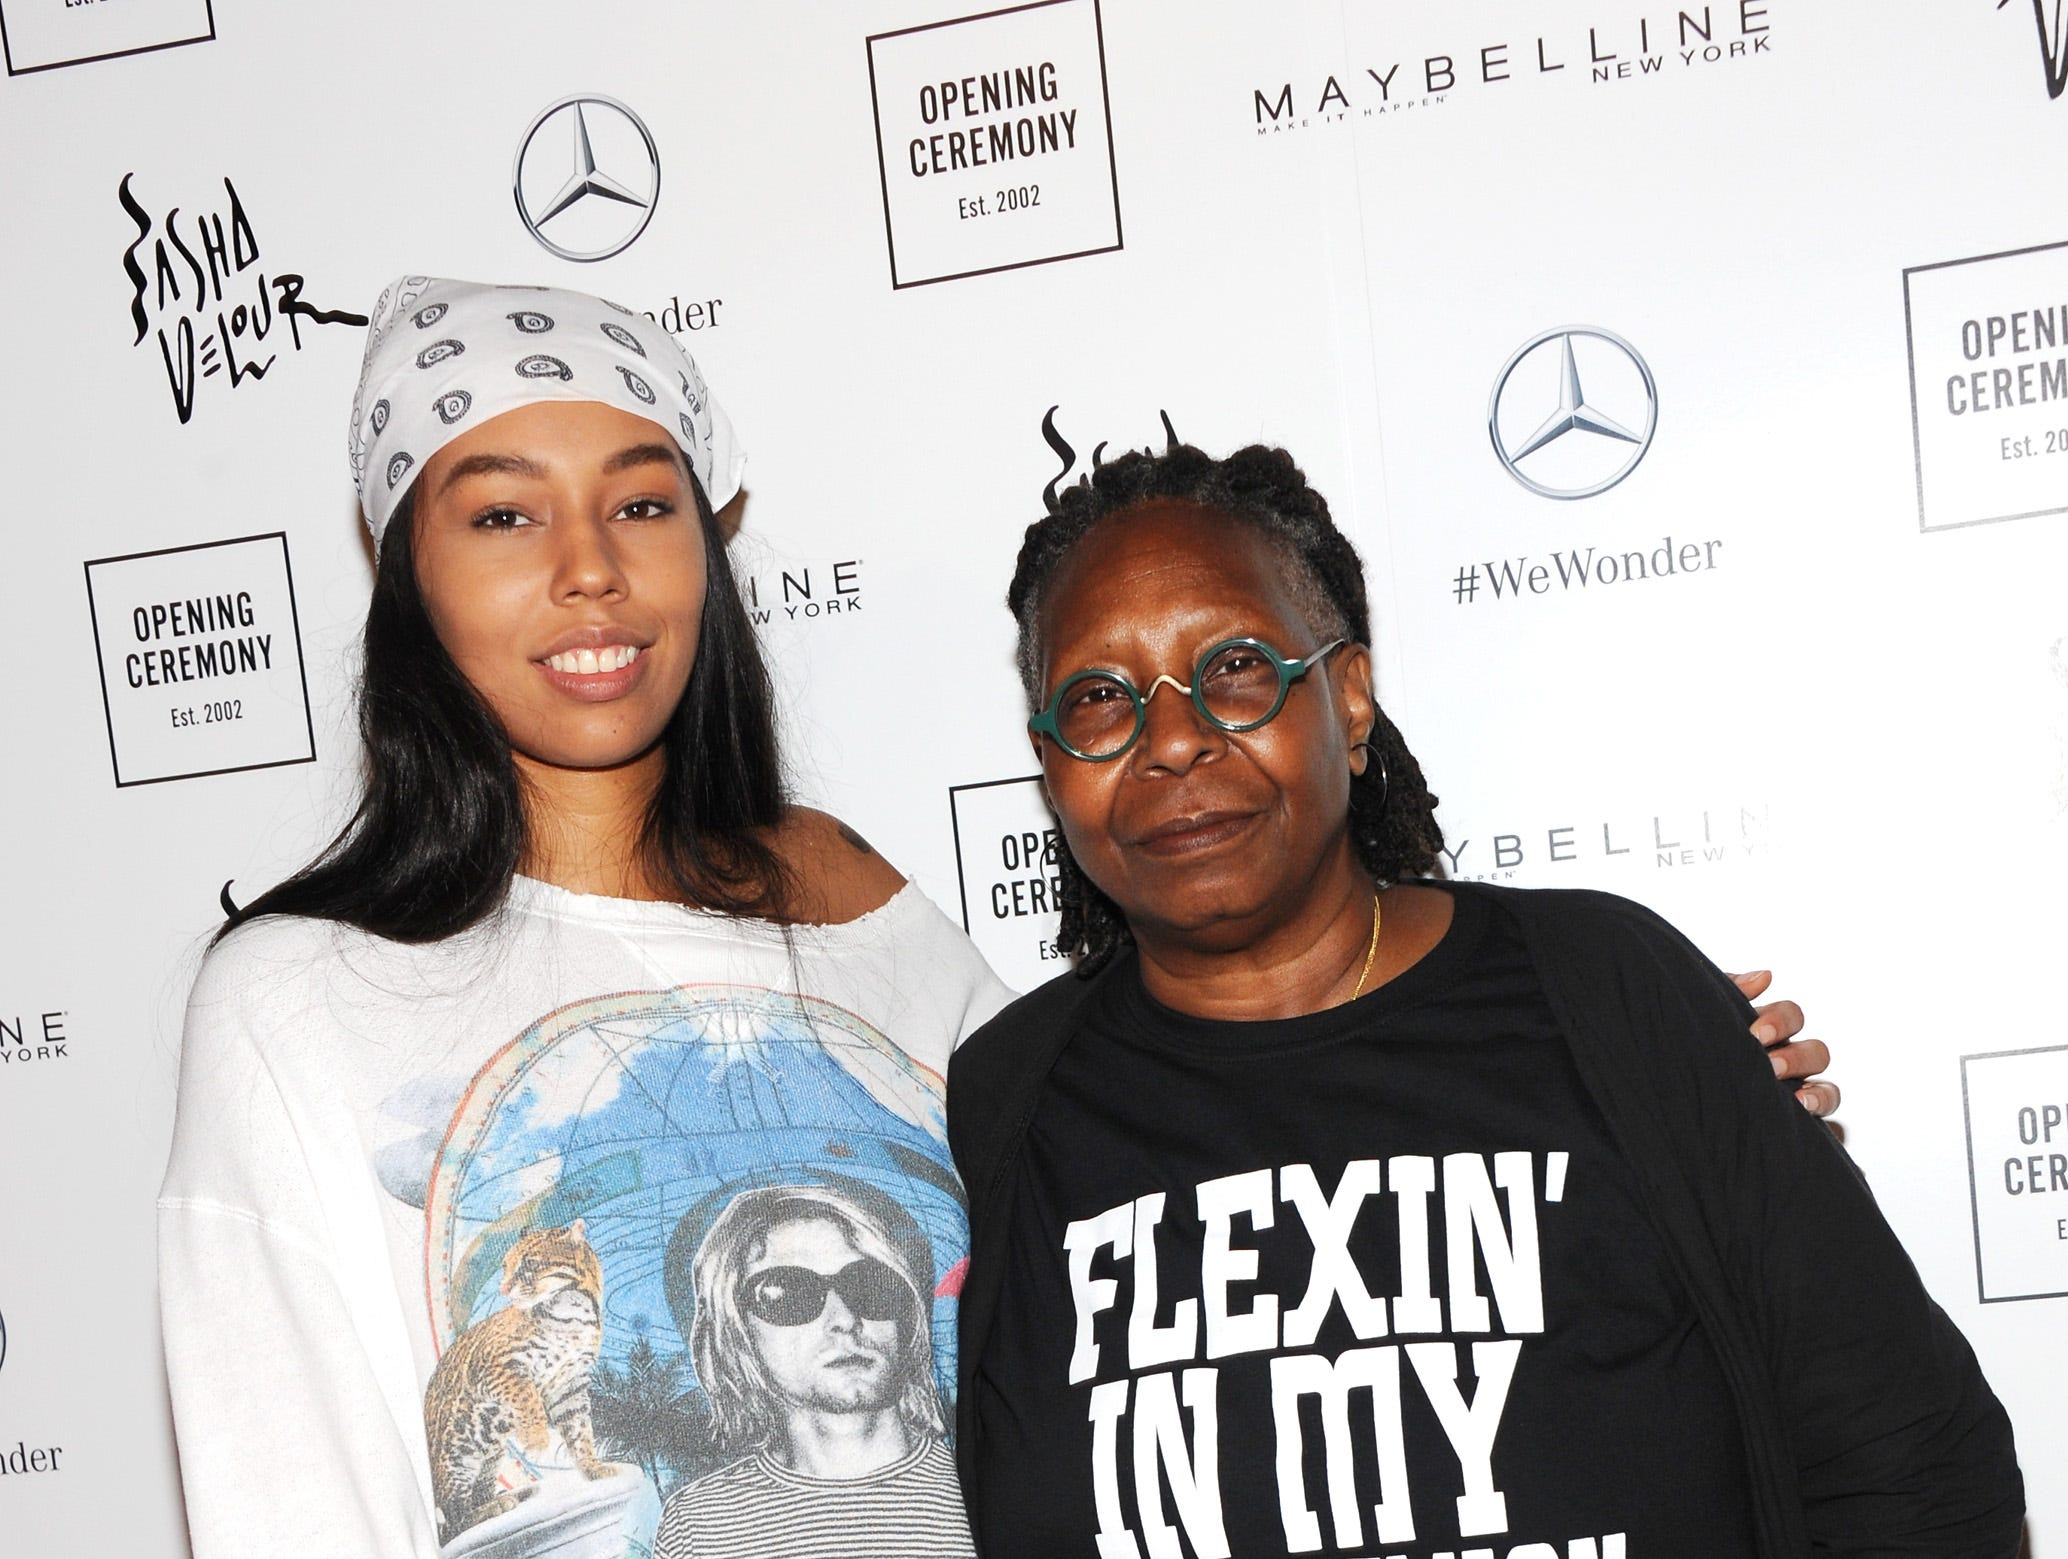 Whoopi Goldberg and her granddaughter Jerzey Dean attended the ceremony.